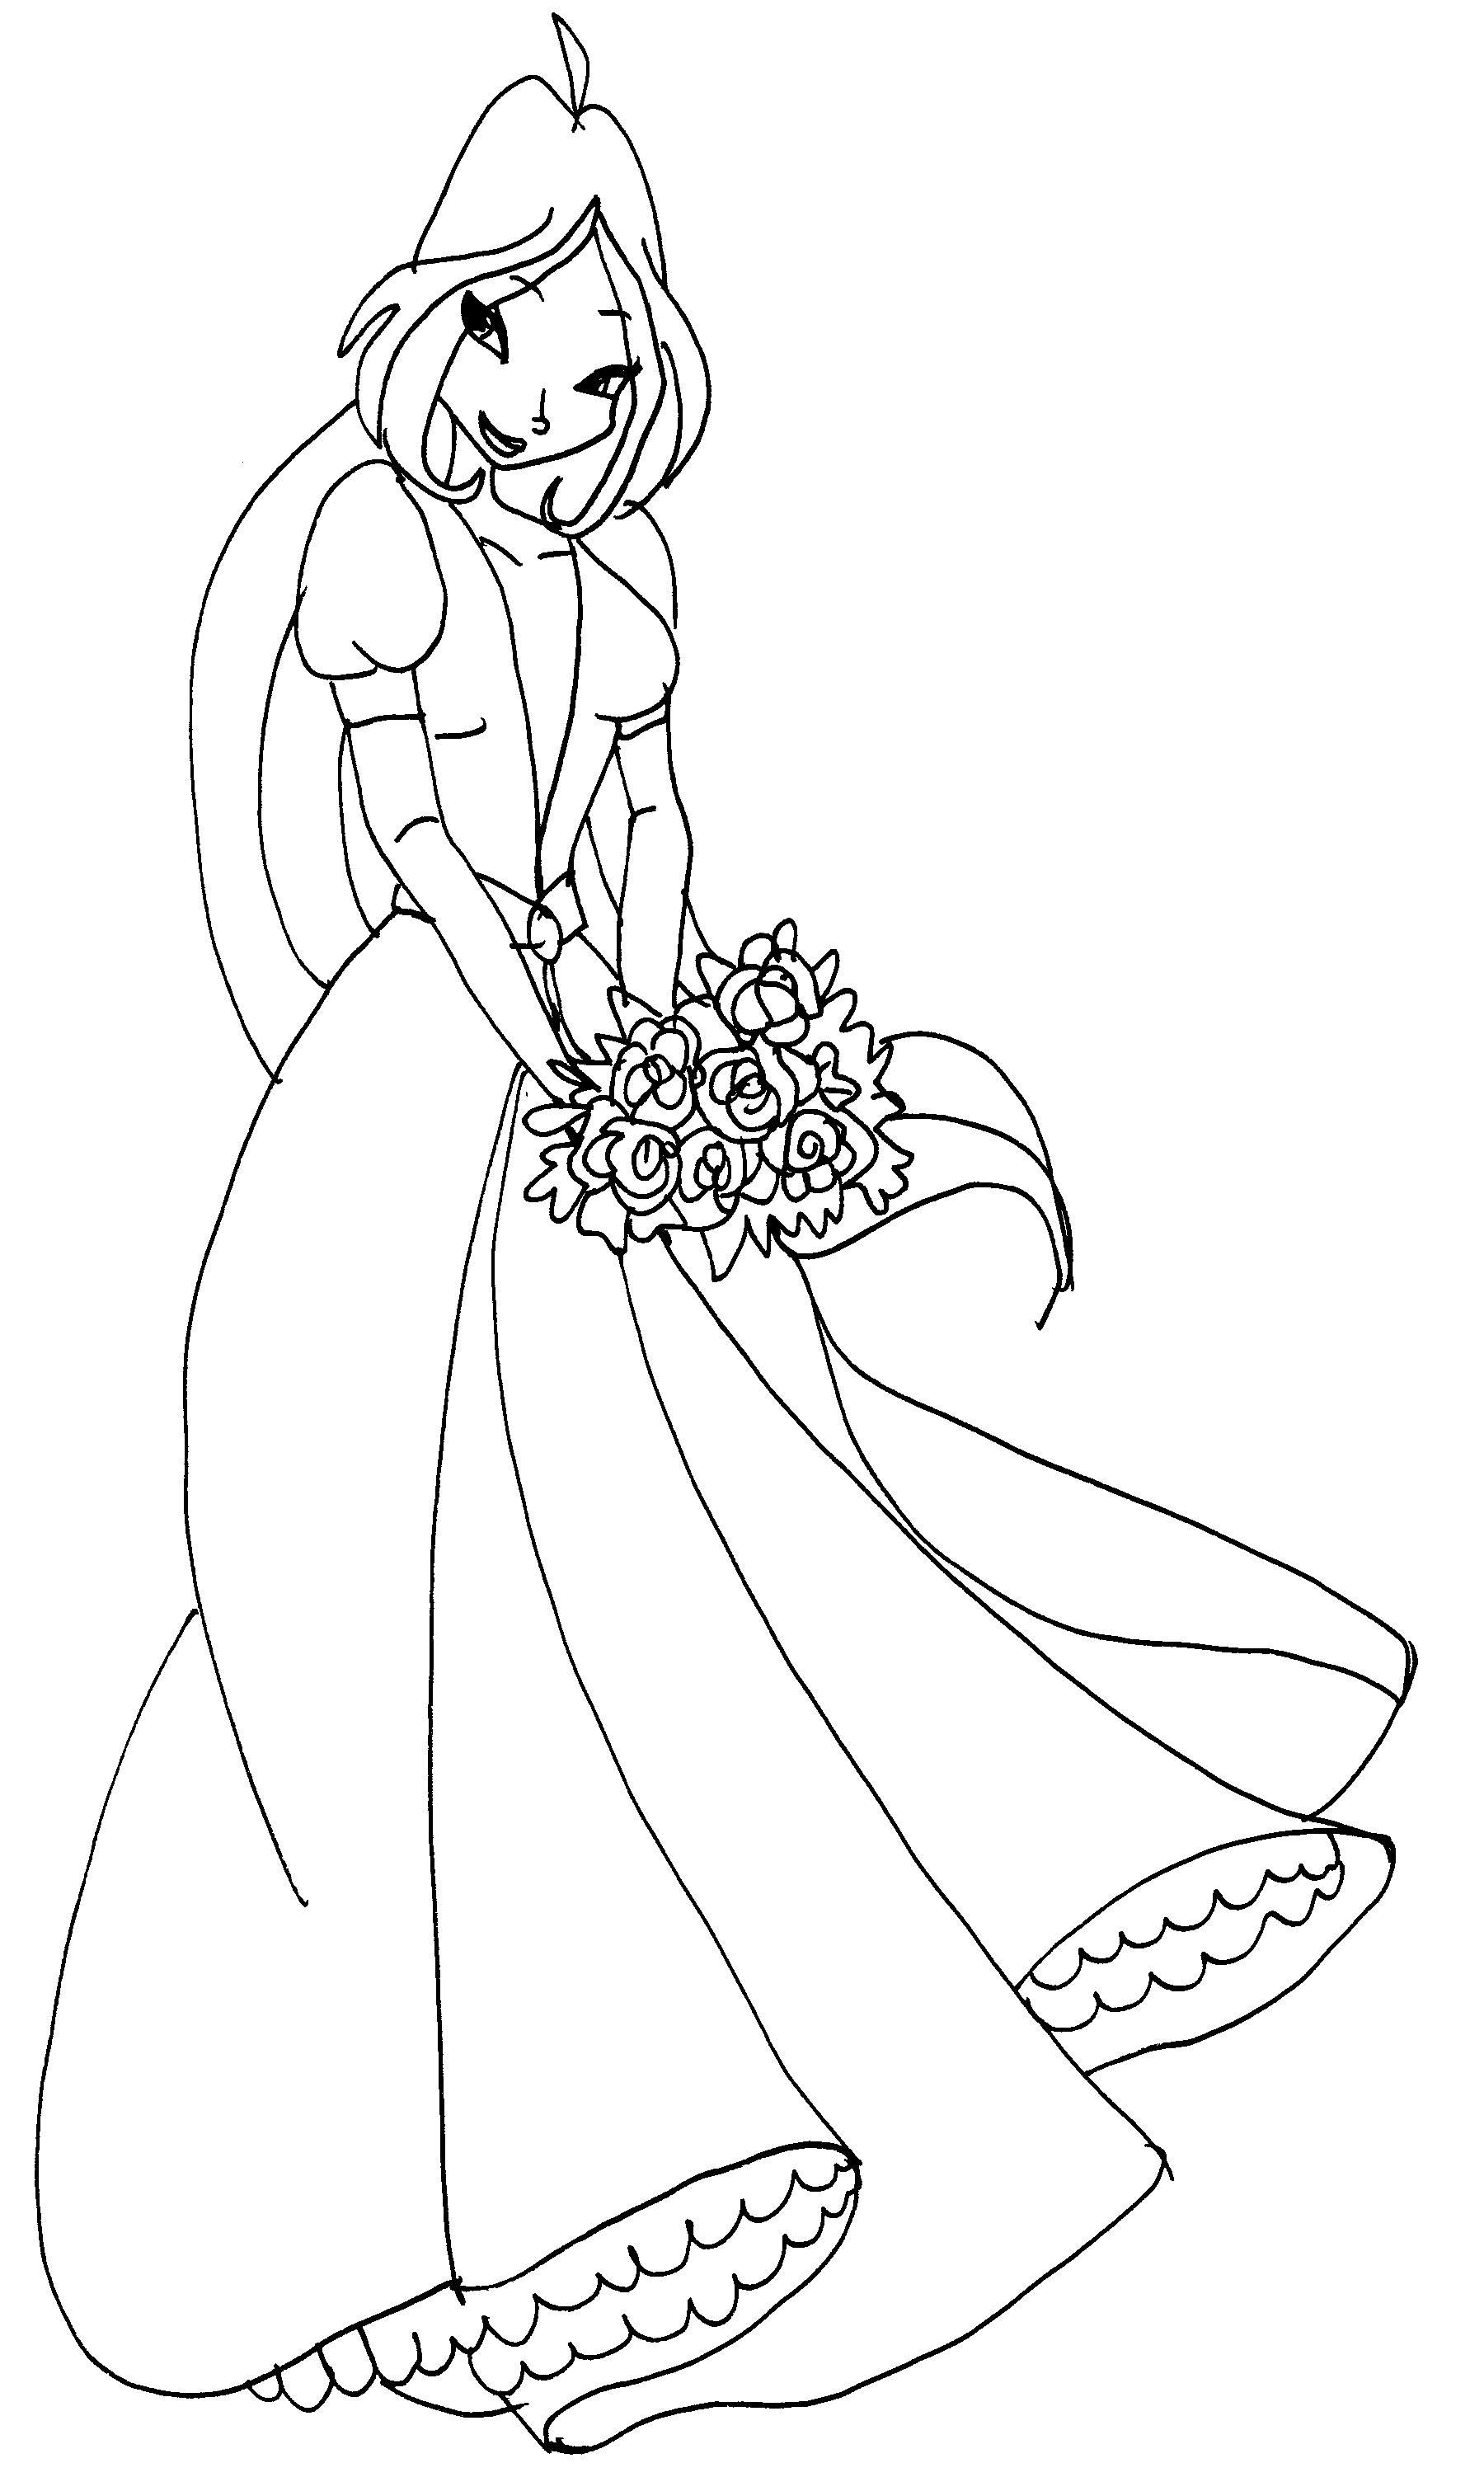 Winx princess coloring pages download and print for free for Winx coloring pages printable